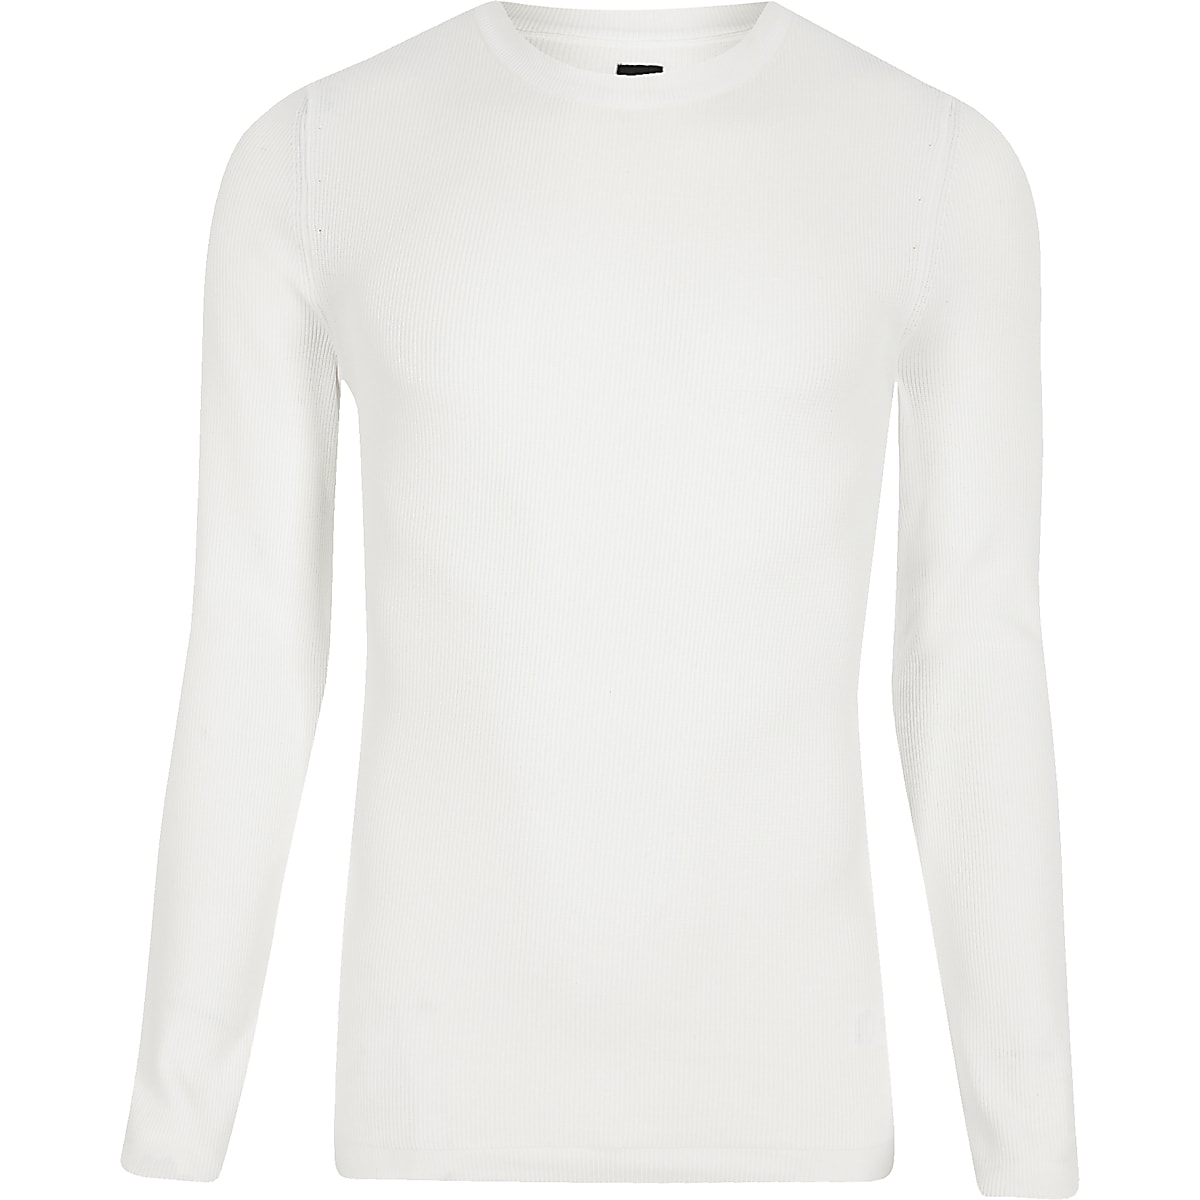 RI Studio – Weißer Muscle Fit Pullover